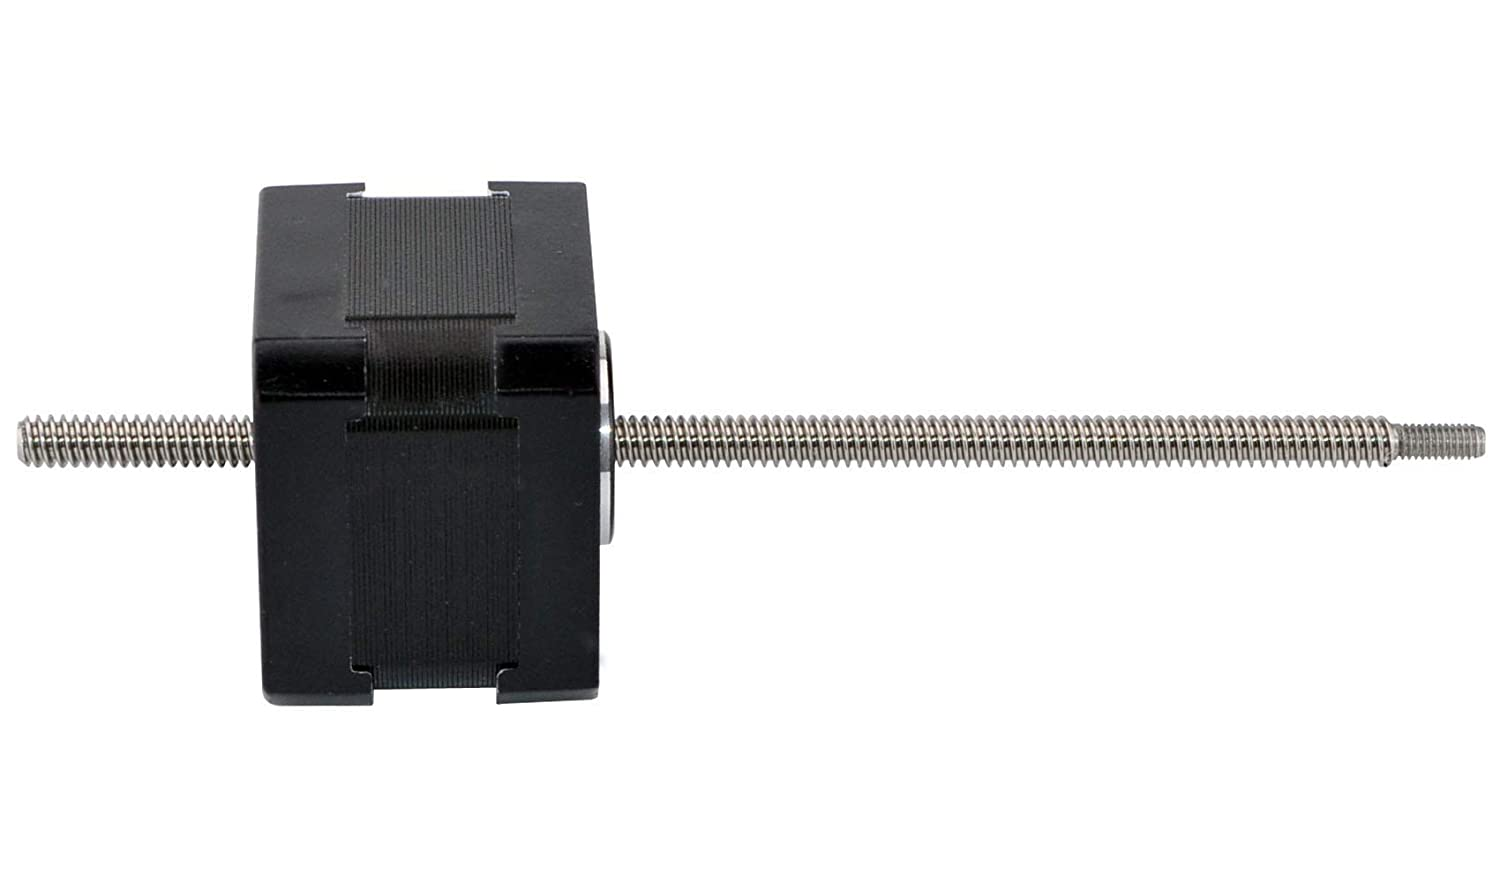 STEPPERONLINE Precision Linear Actuator Nema 17 Non-Captive 34mm Stack 0.7A Lead 4.877mm//0.192 Length 150mm for 3D Printers Z Axis or CNC Machine